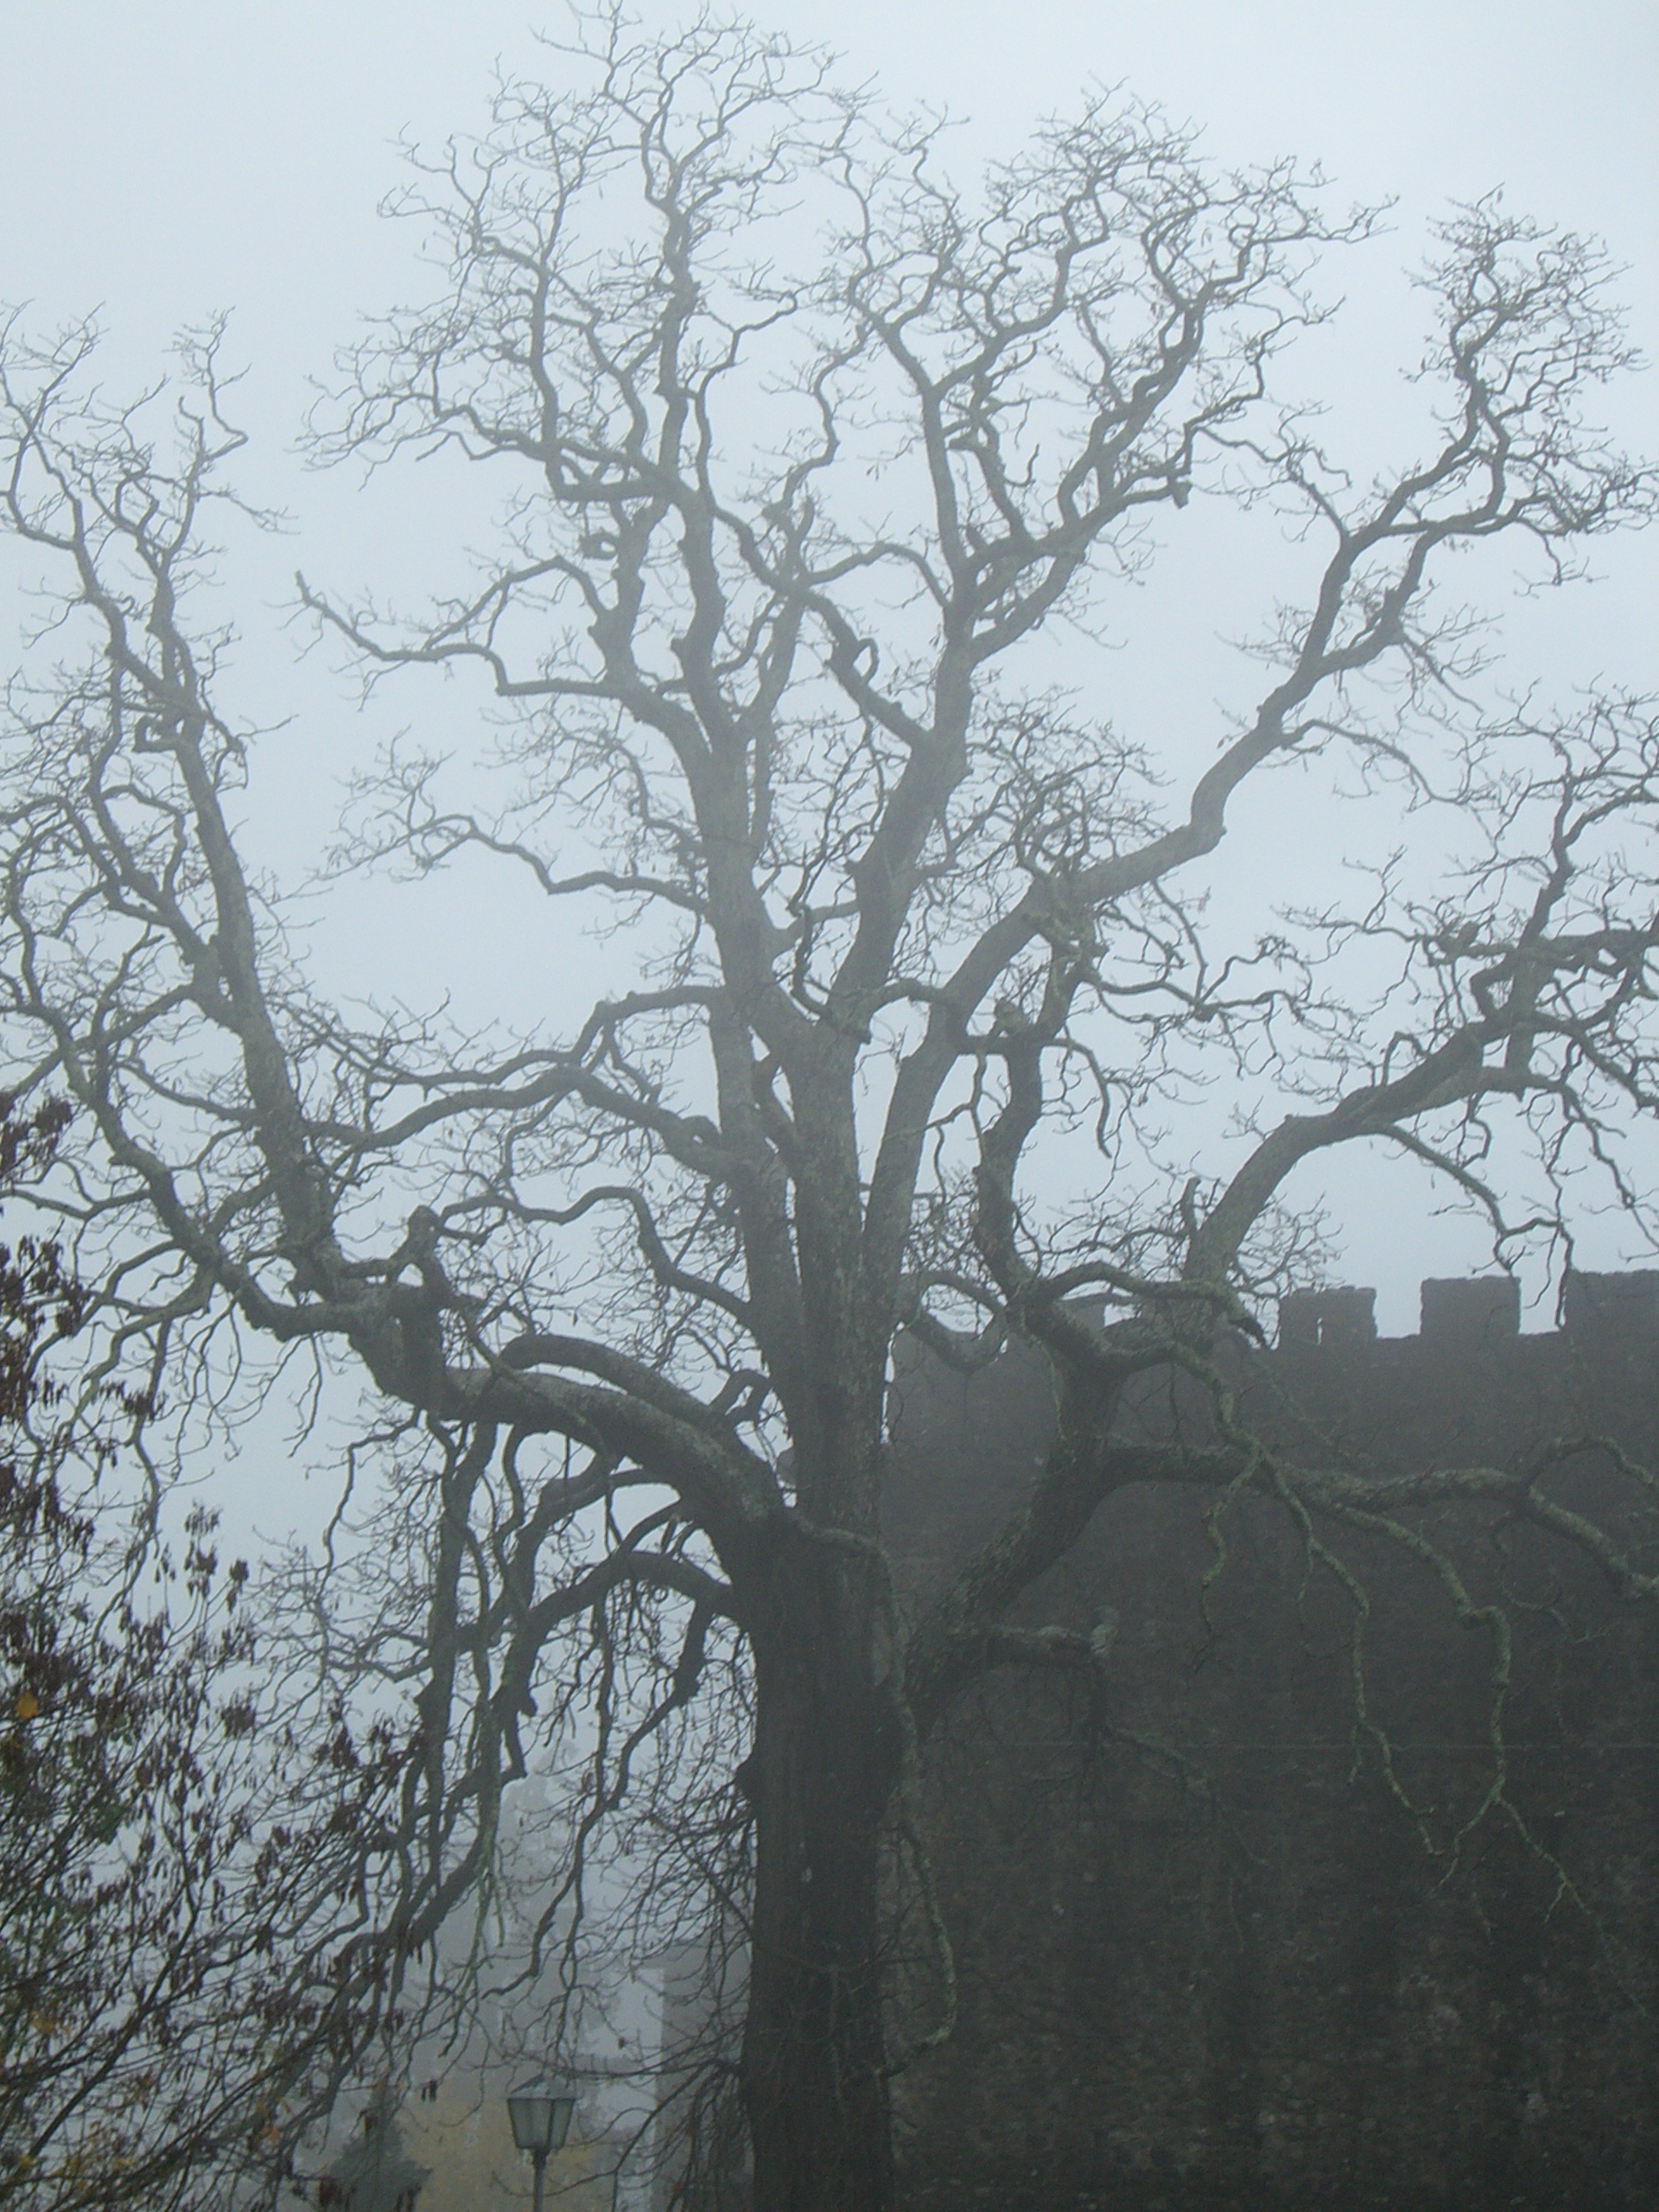 a-cool-dead-tree-in-front-of-an-old-castle-in-Northern-Tuscany-wallpaper-wp5402940